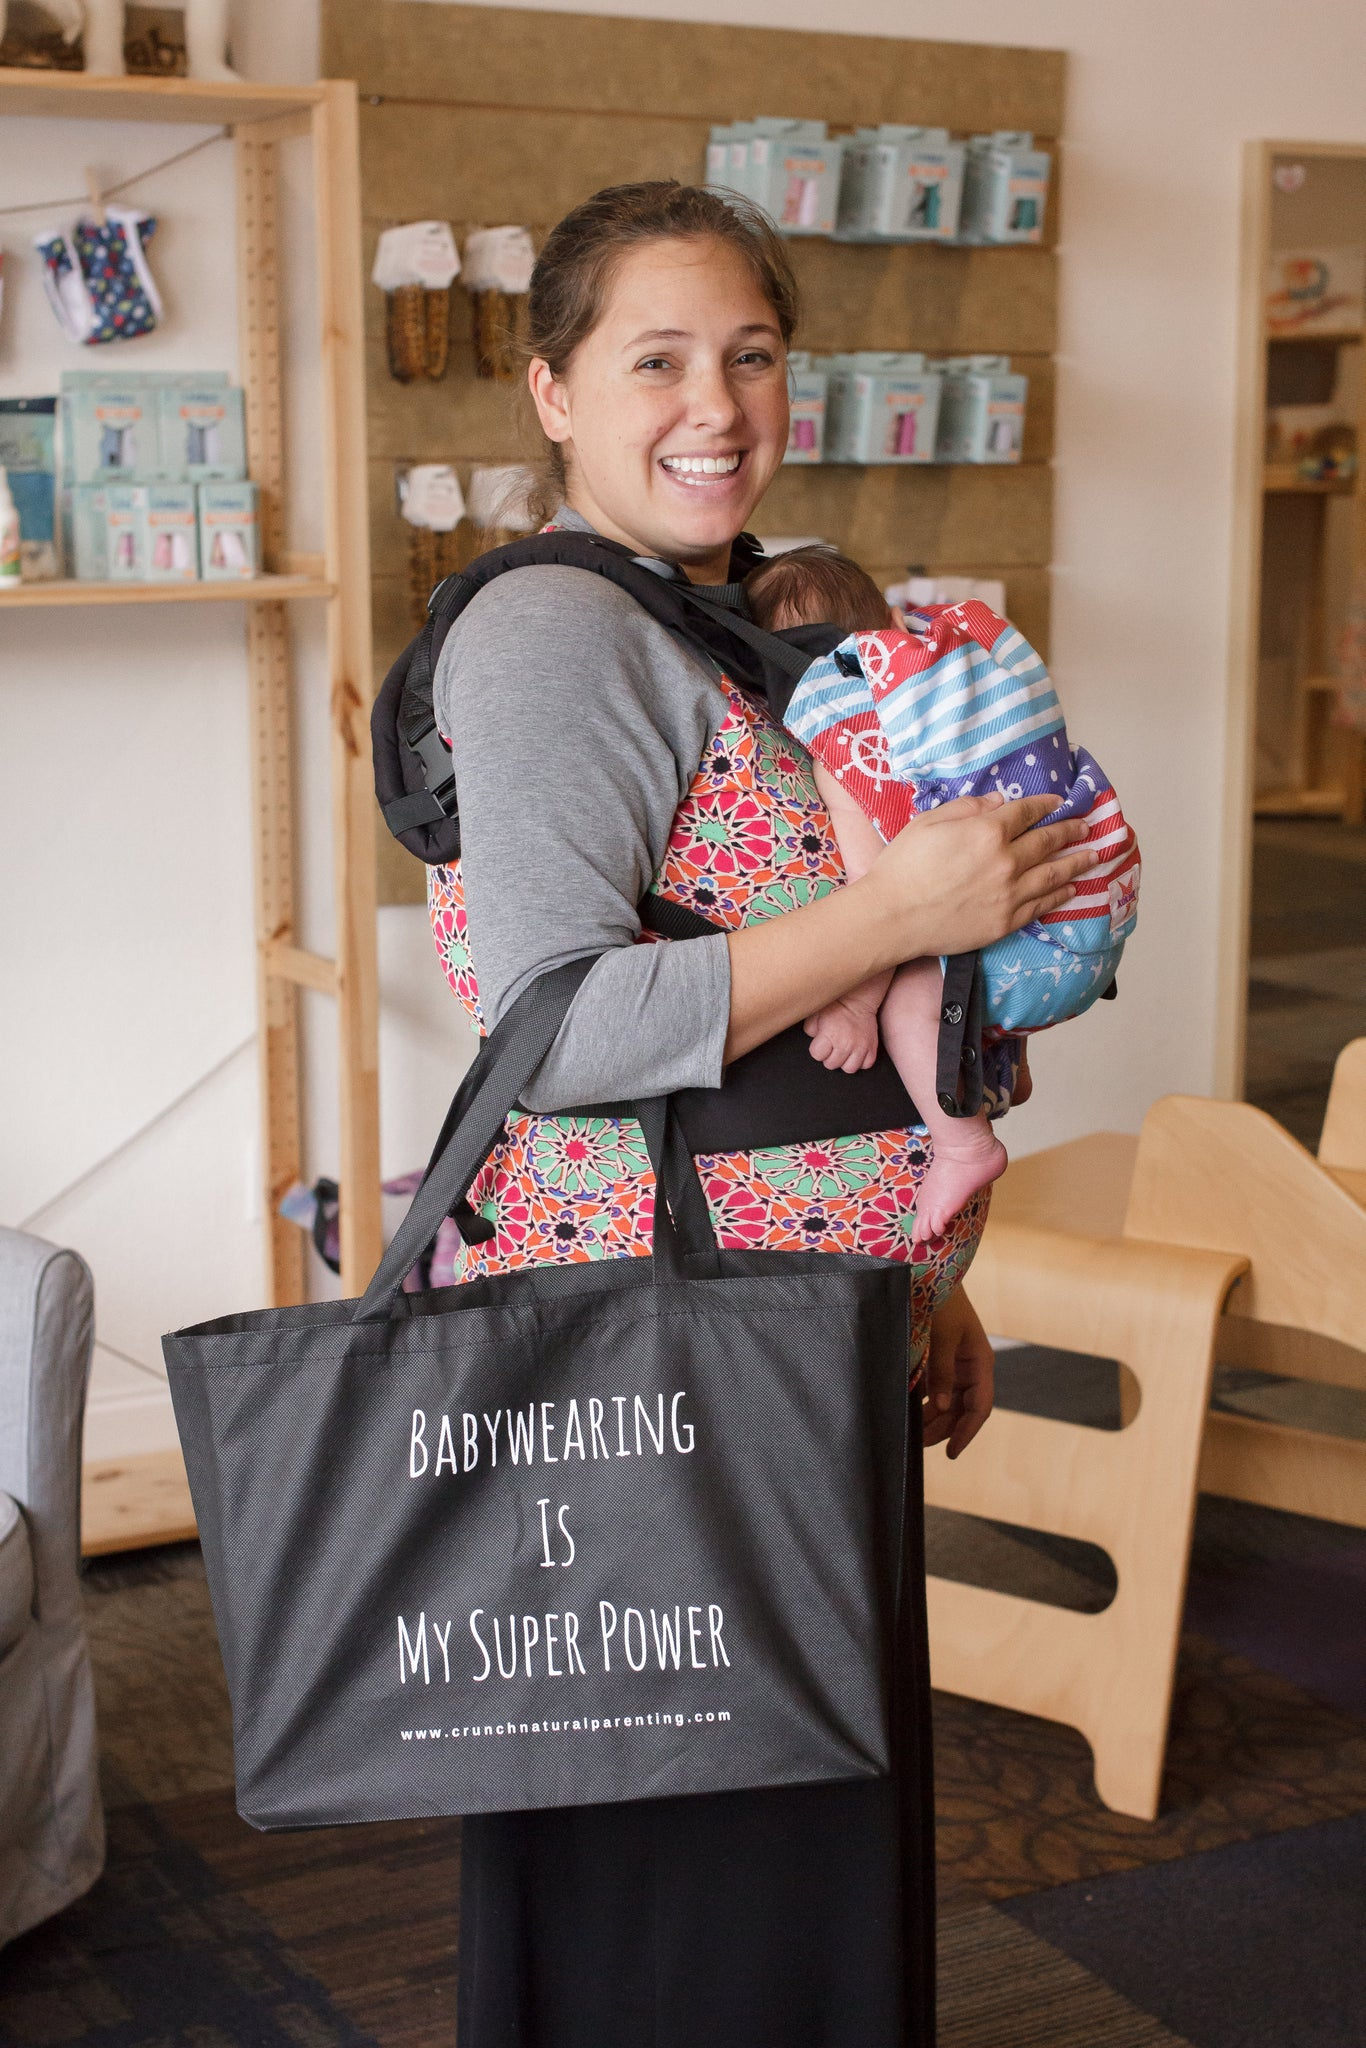 Babywearing is My Super Power Tote Bag - Crunch Natural Parenting is where to buy